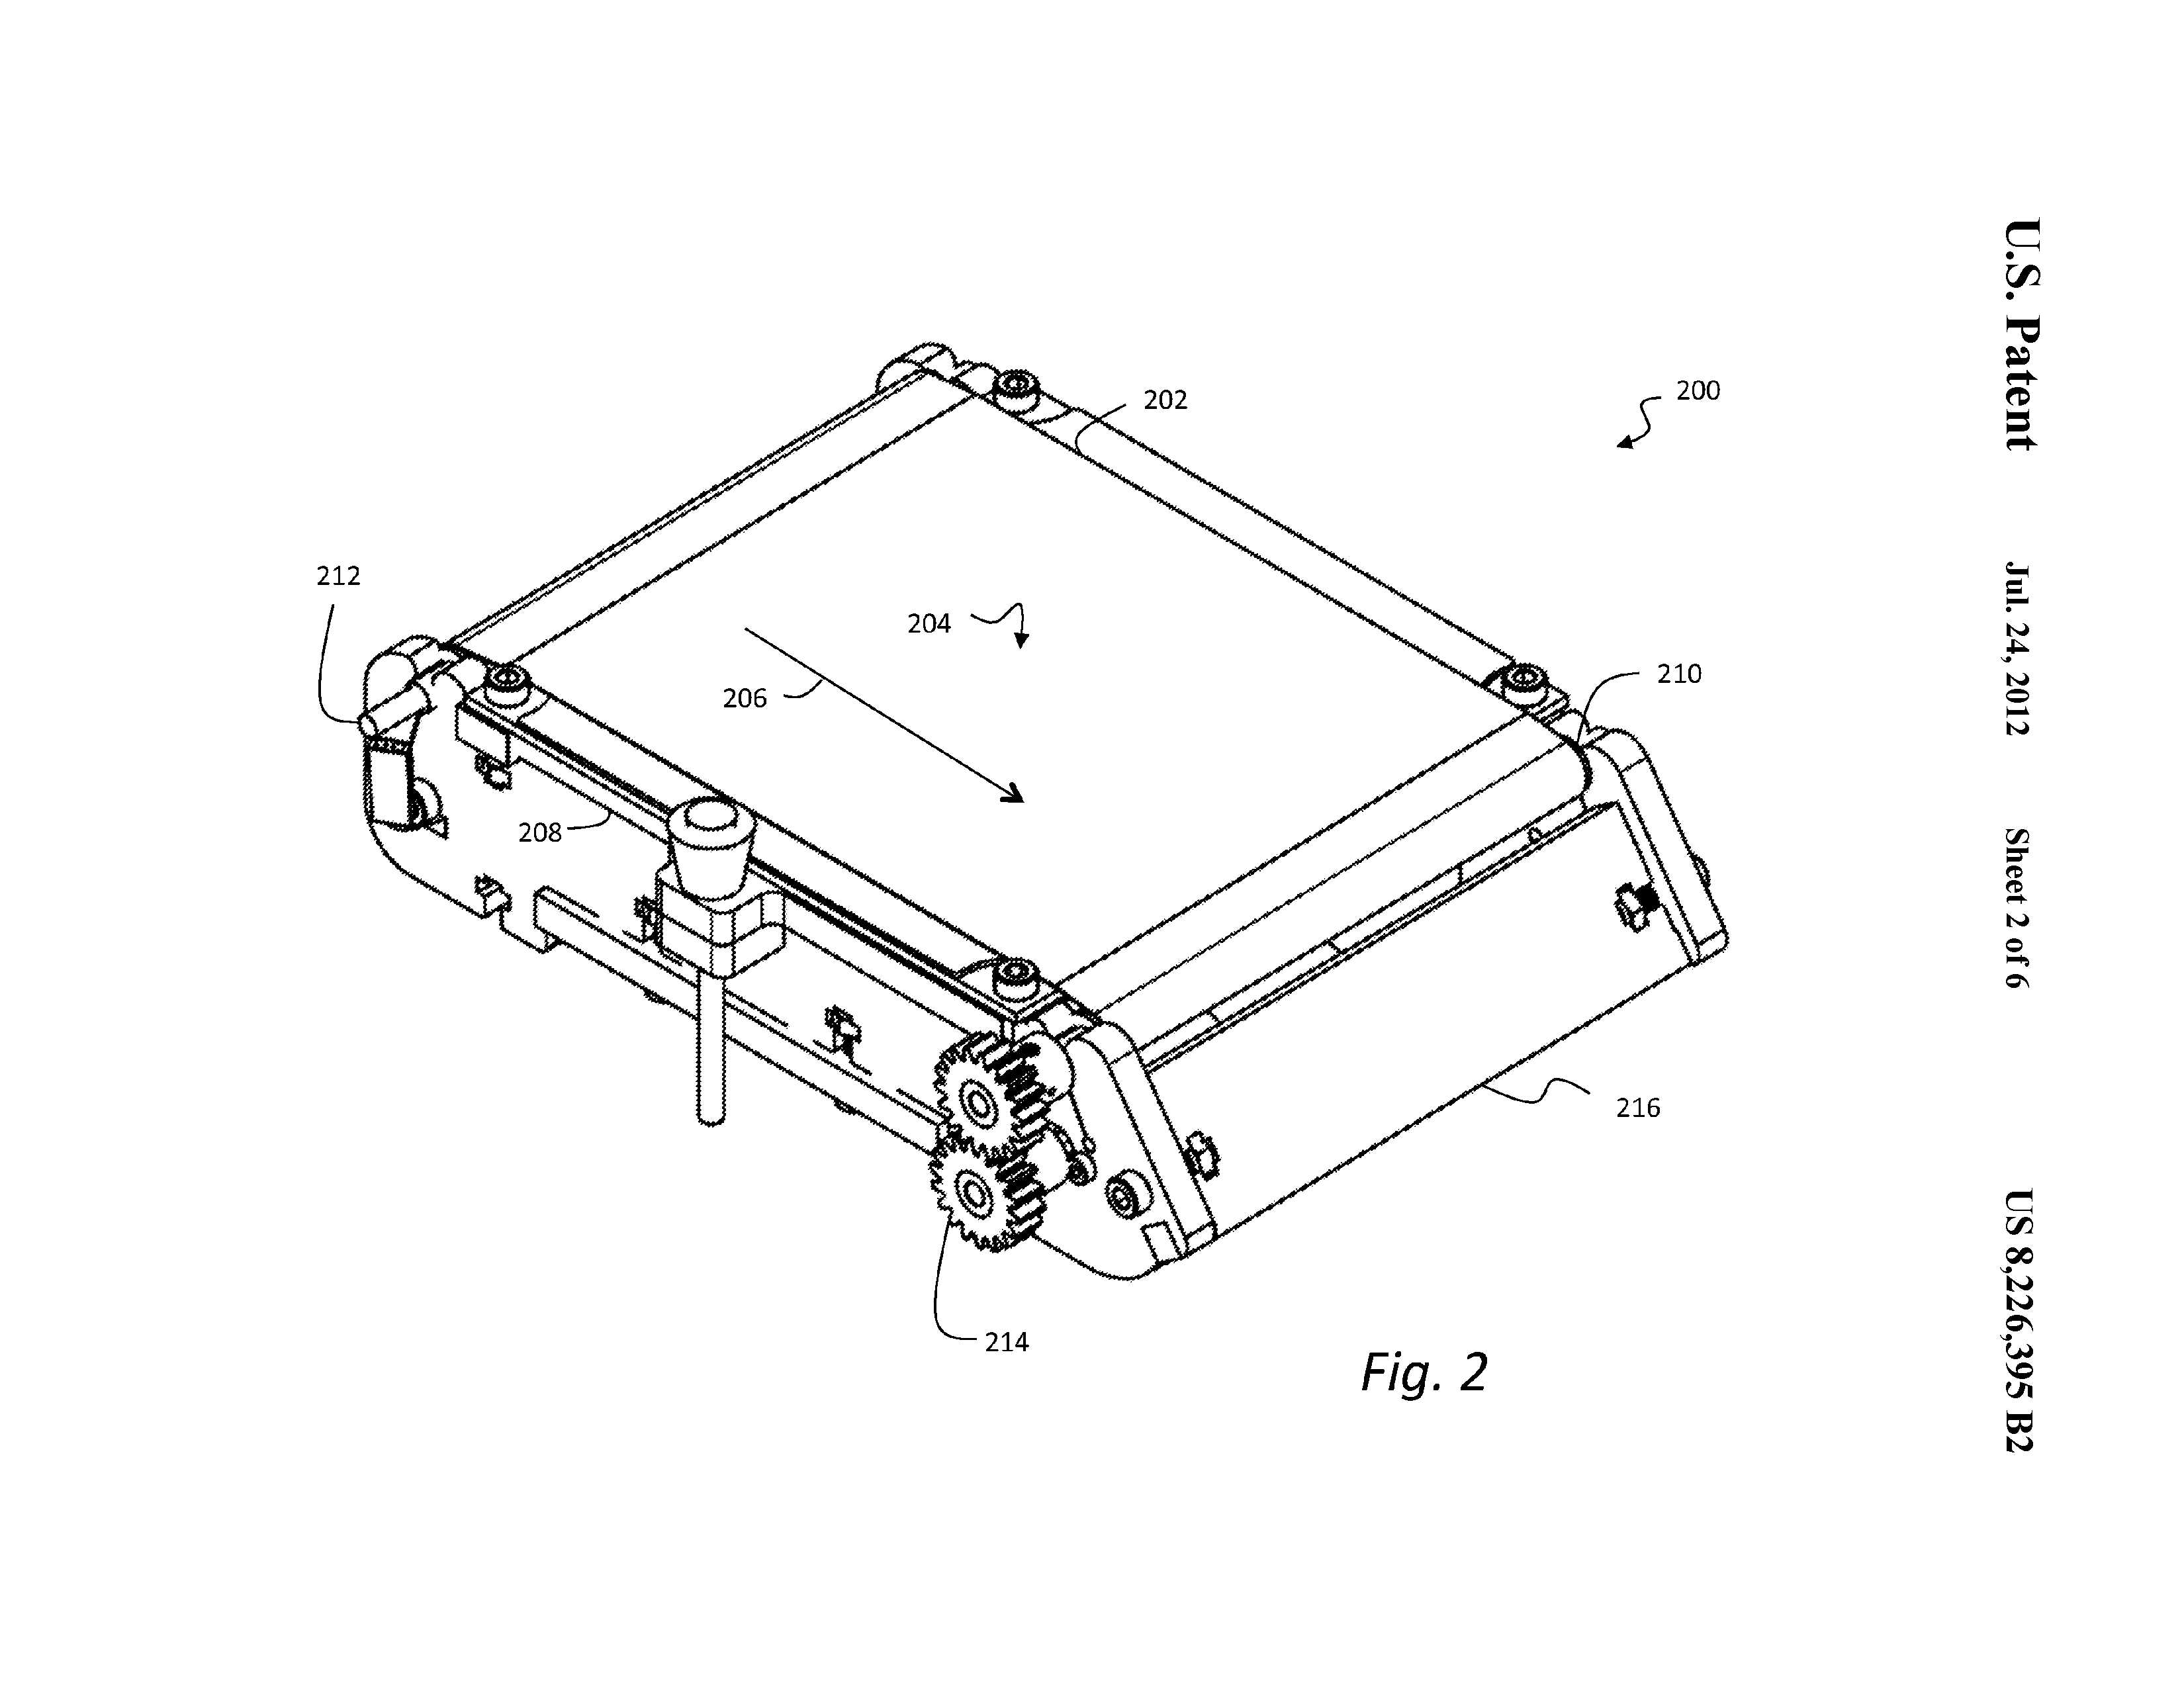 An image from MakerBot's patent, U.S. No. 8,226,395 B2, for a conveyor-based 3D printing build platform.